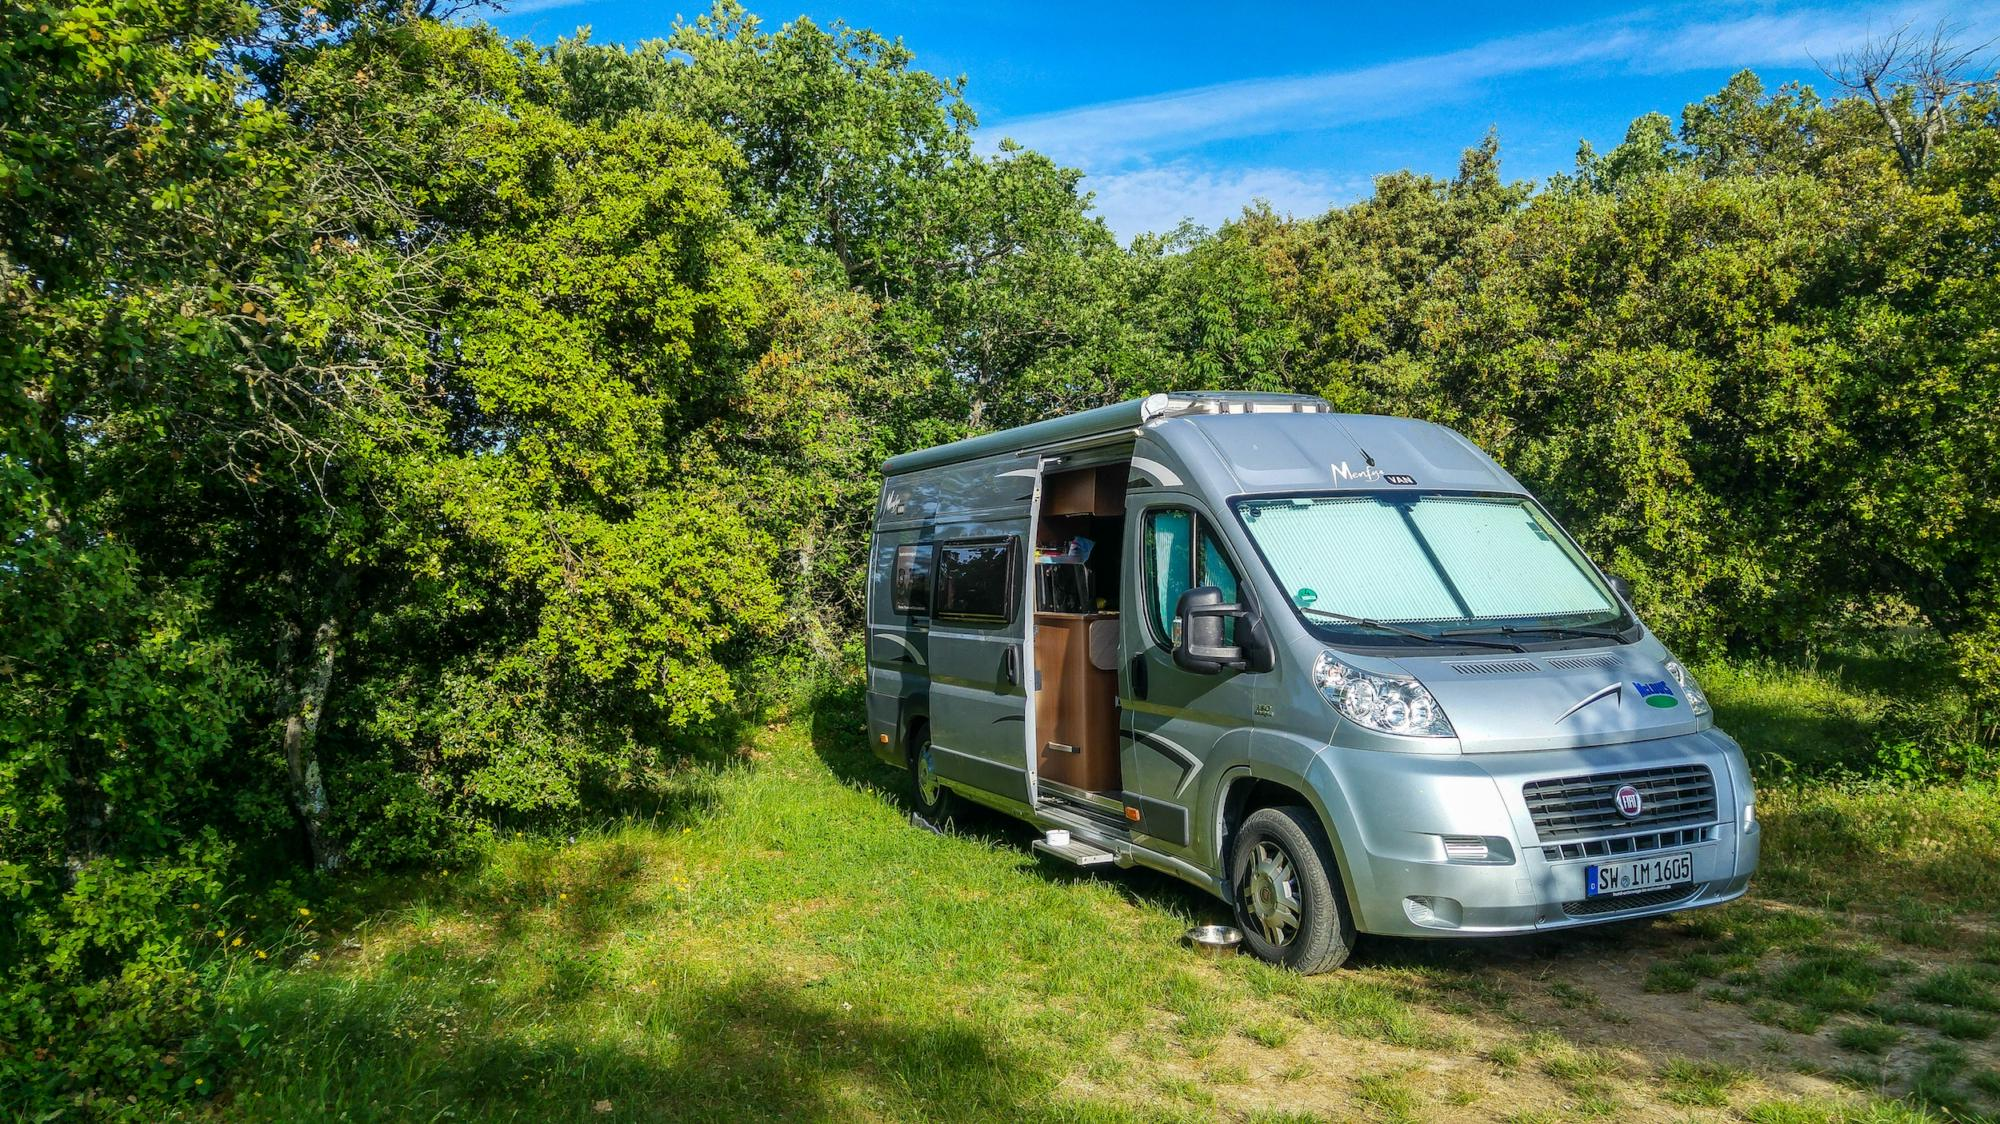 Campervan Hire Near Me – Find Campervan Hire and Motorhome Rental Nearby